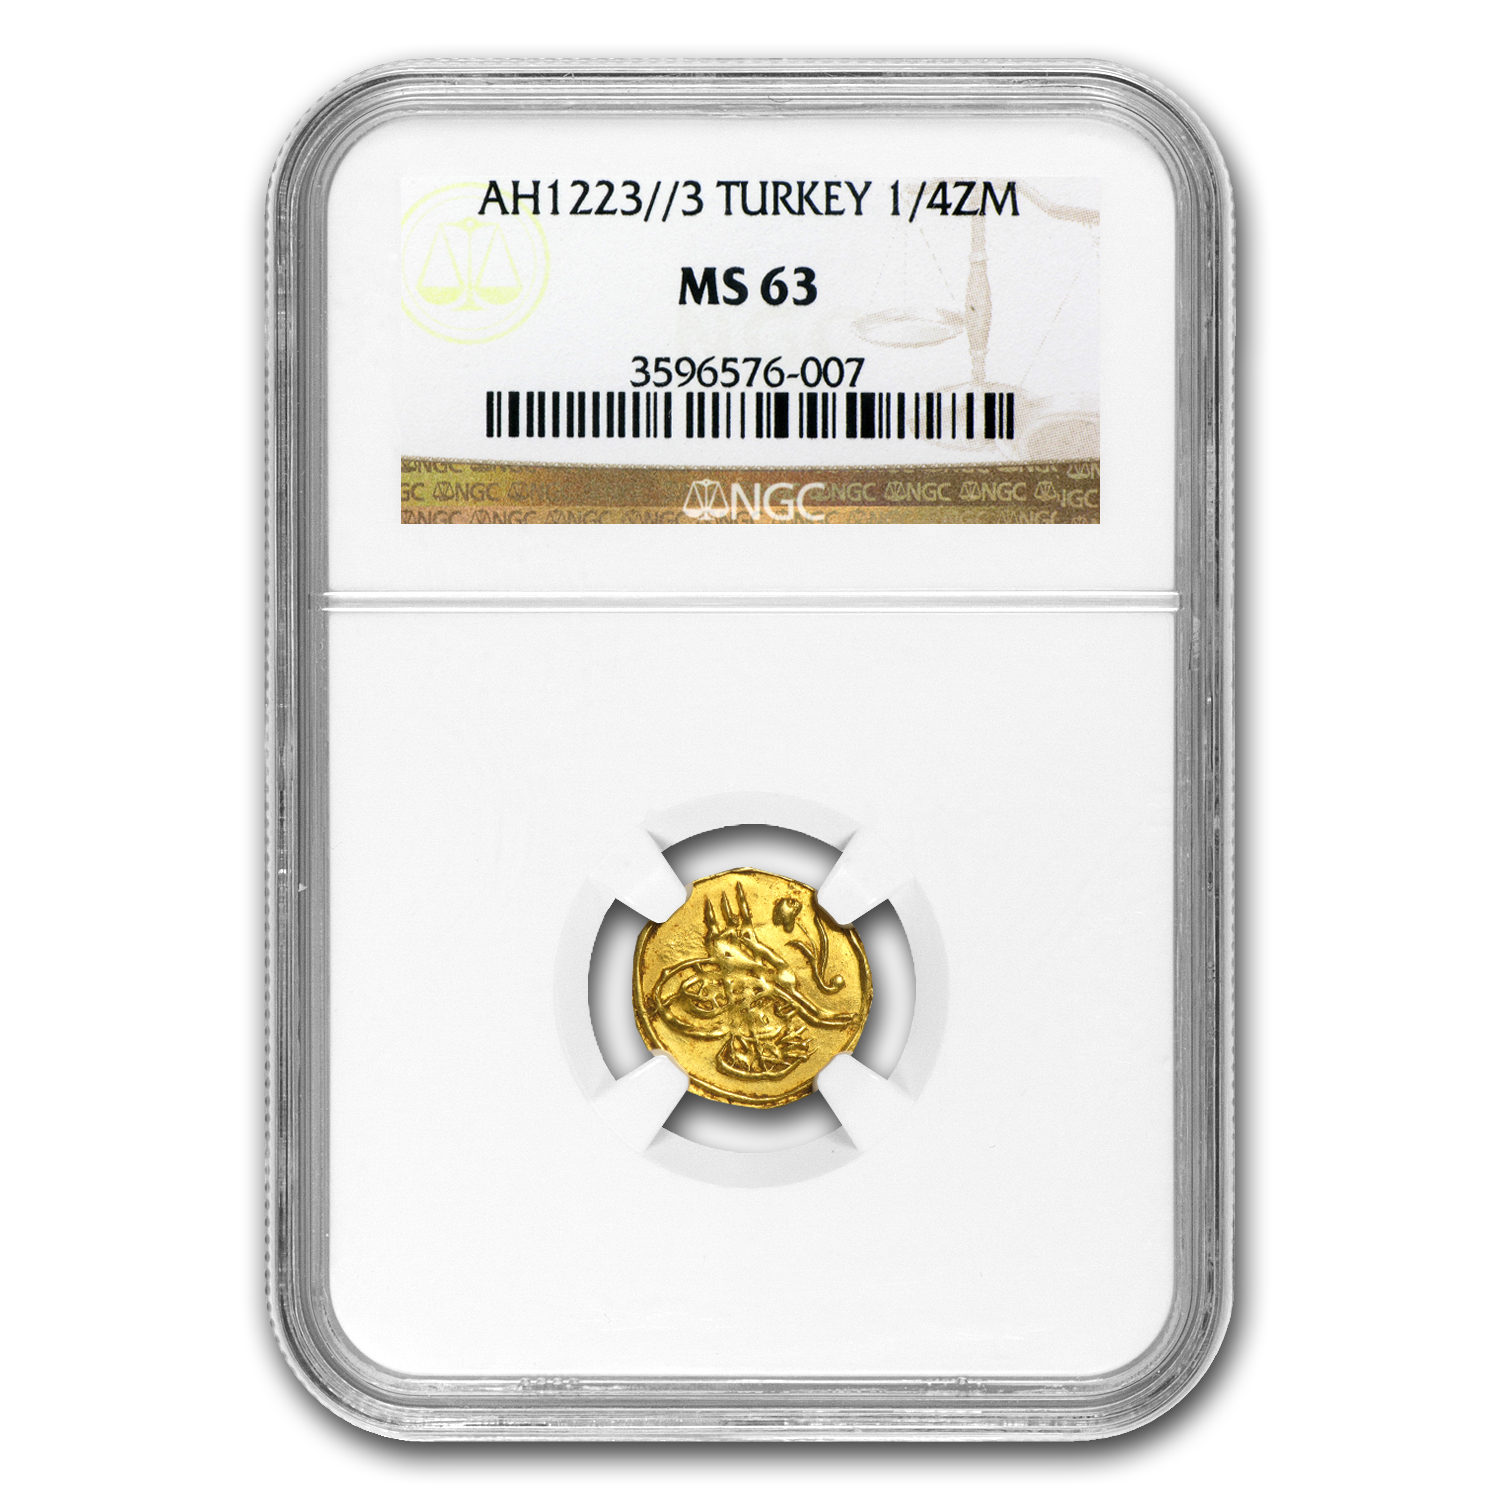 Turkey AH 1/4 Zeri Mahbub Gold Coin MS-63 NGC